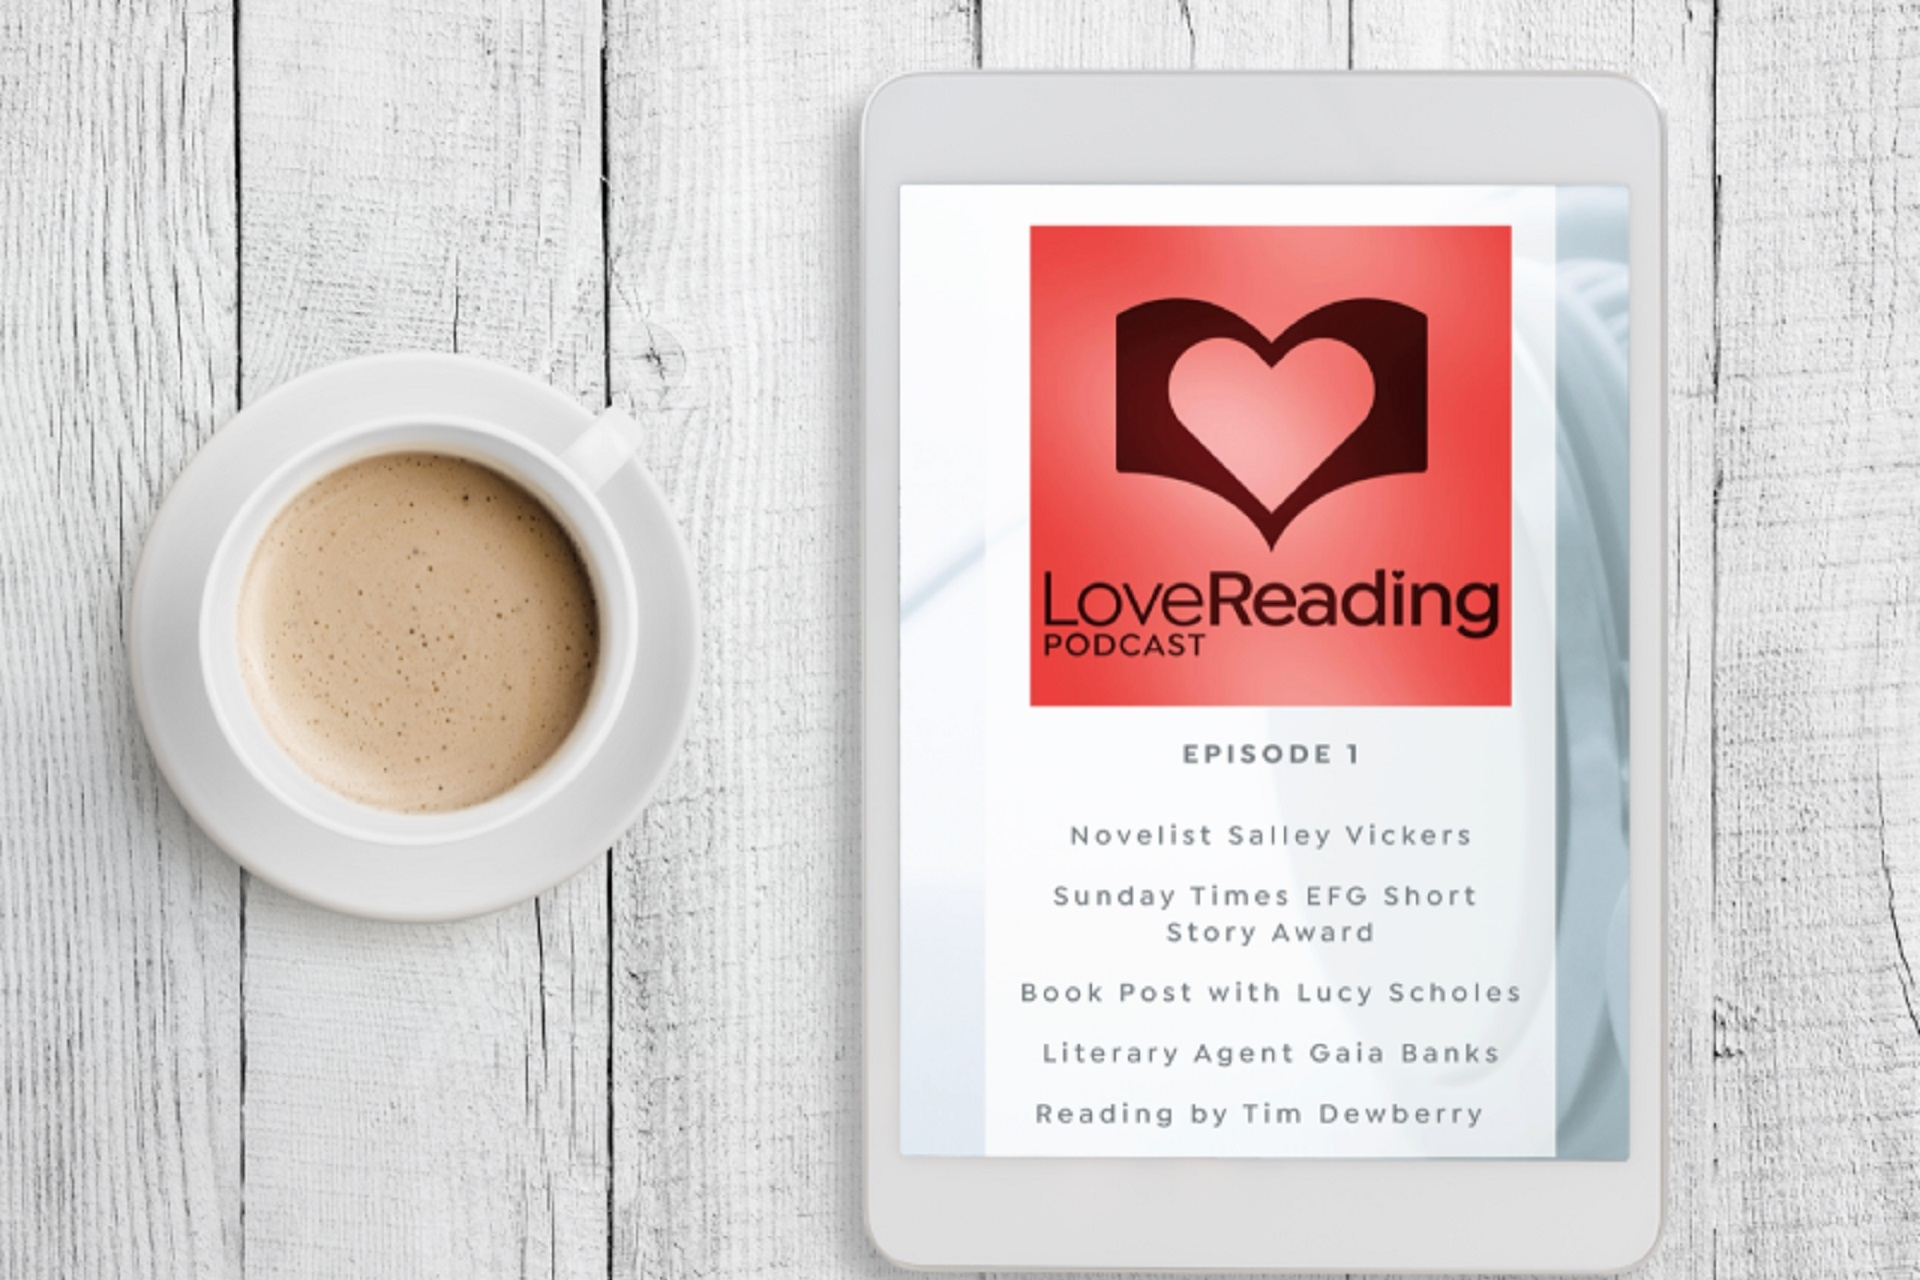 The LoveReading Podcast